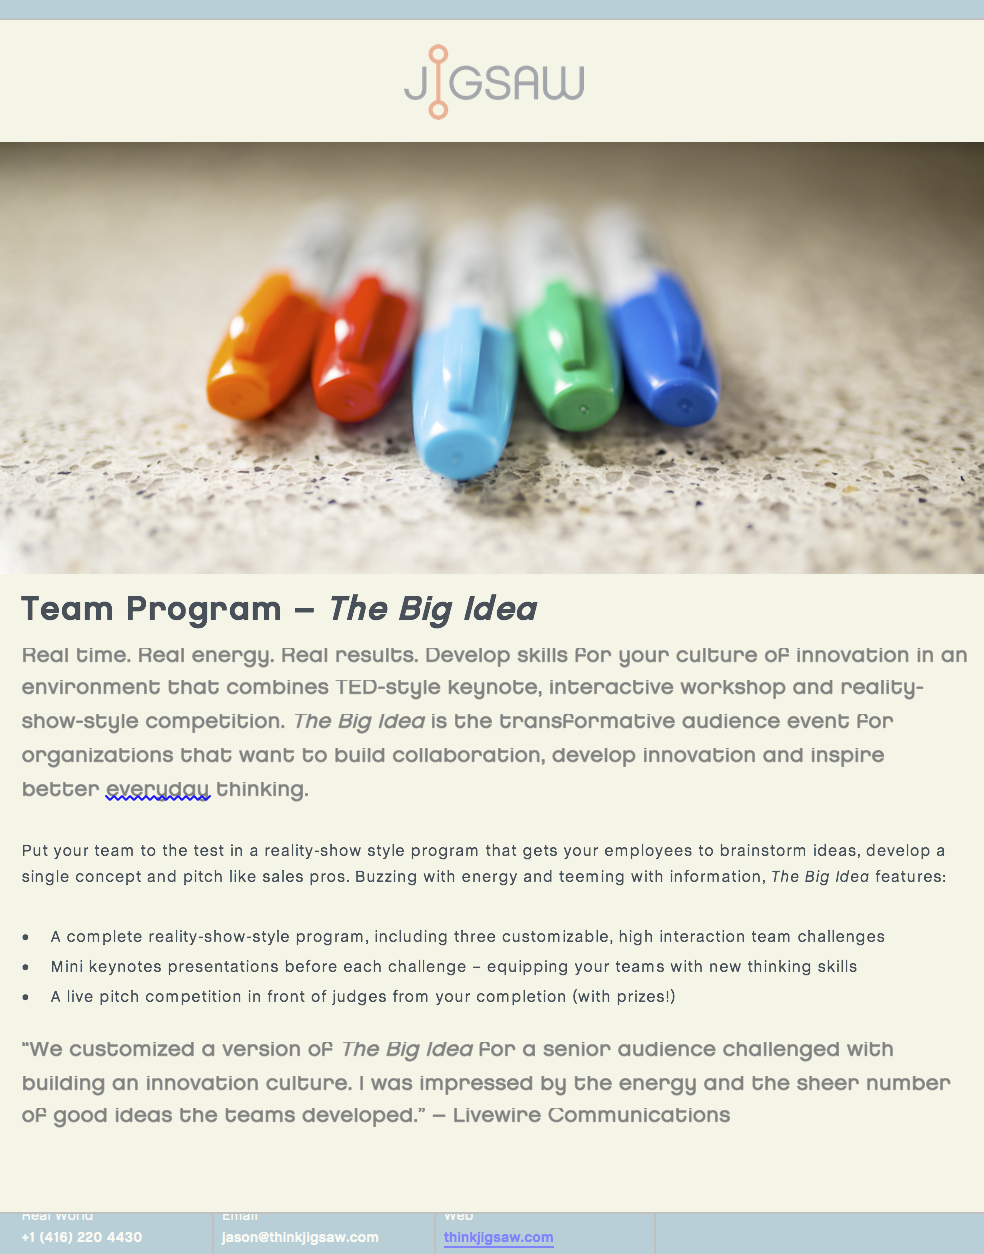 The Big Idea by Jigsaw – 416 220 4430